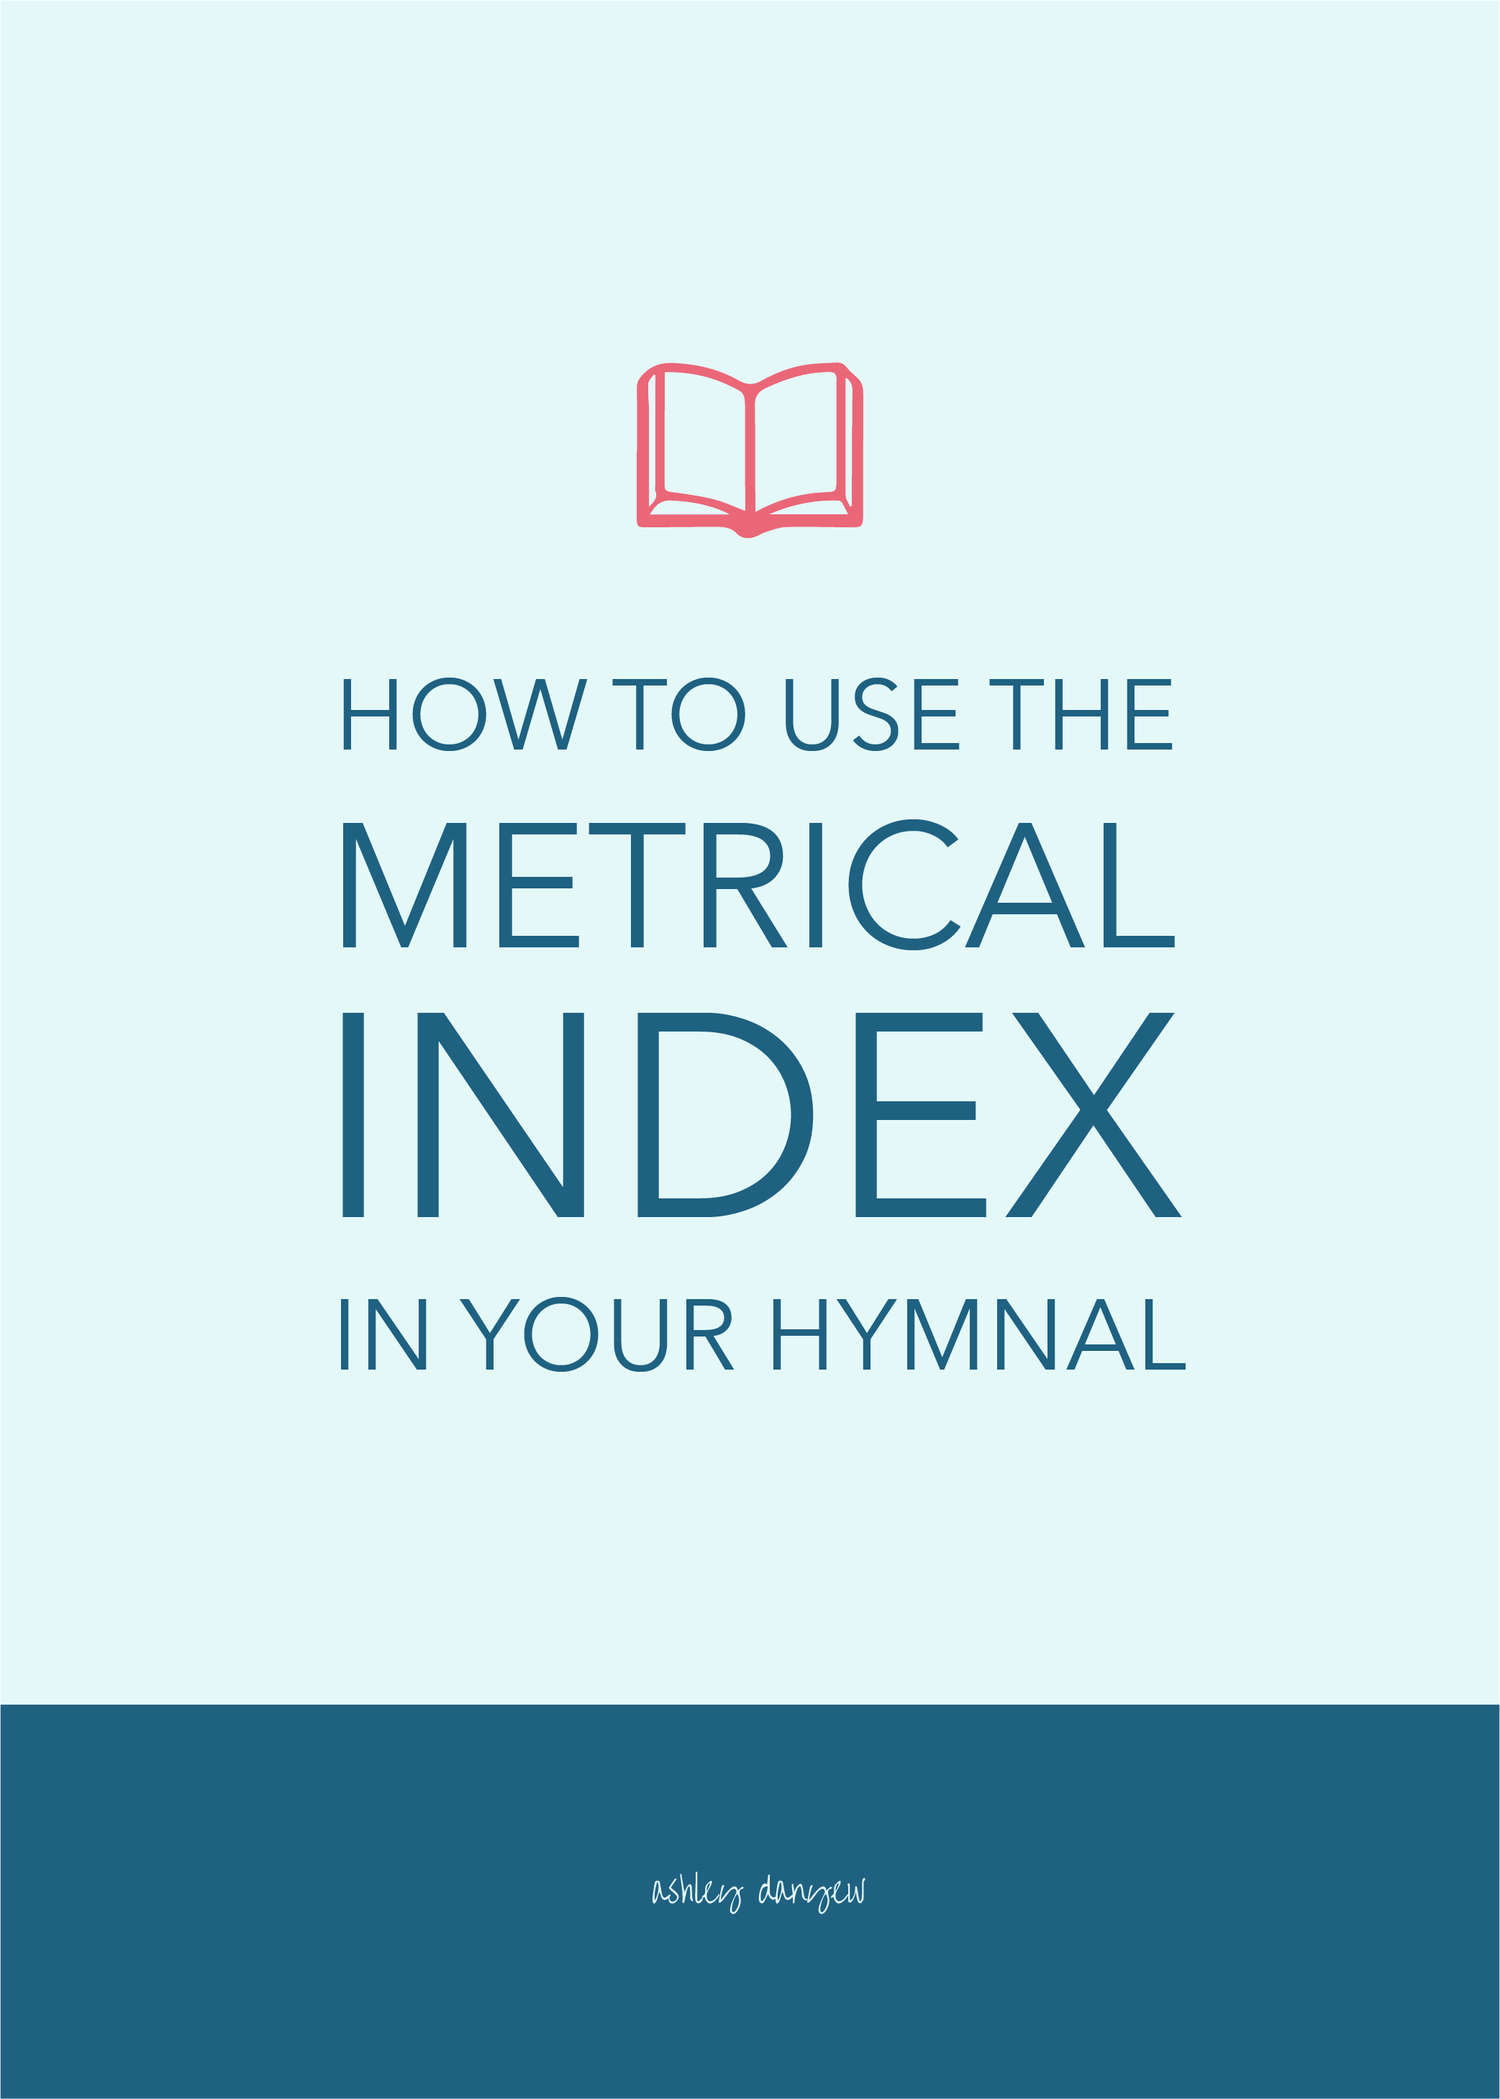 How to Use the Metrical Index in Your Hymnal   Ashley Danyew